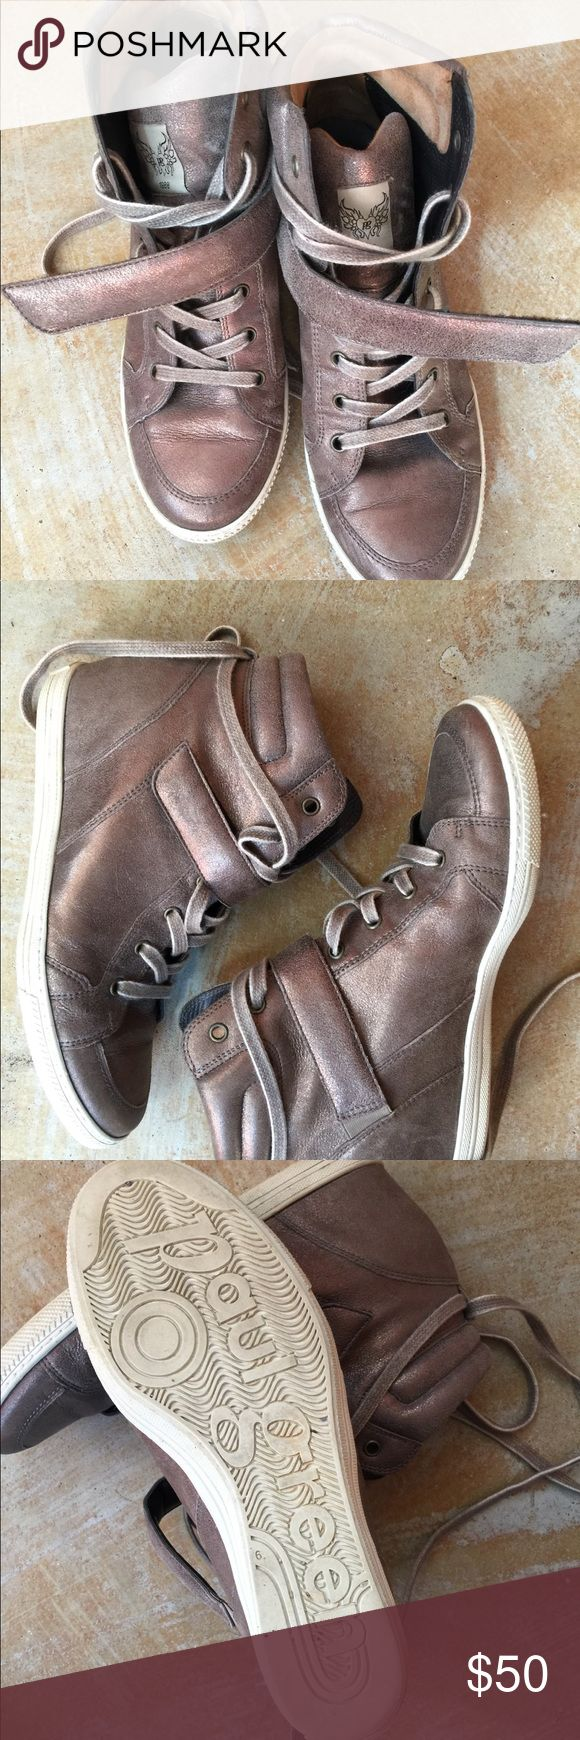 Paul Green leather high tops Paul Green bronze leather high top sneakers with inside wedge. In good used condition. Re-poshing because they are a little snug on me. Marked size 9 but more like an 8 1/2 Paul Green Shoes Sneakers